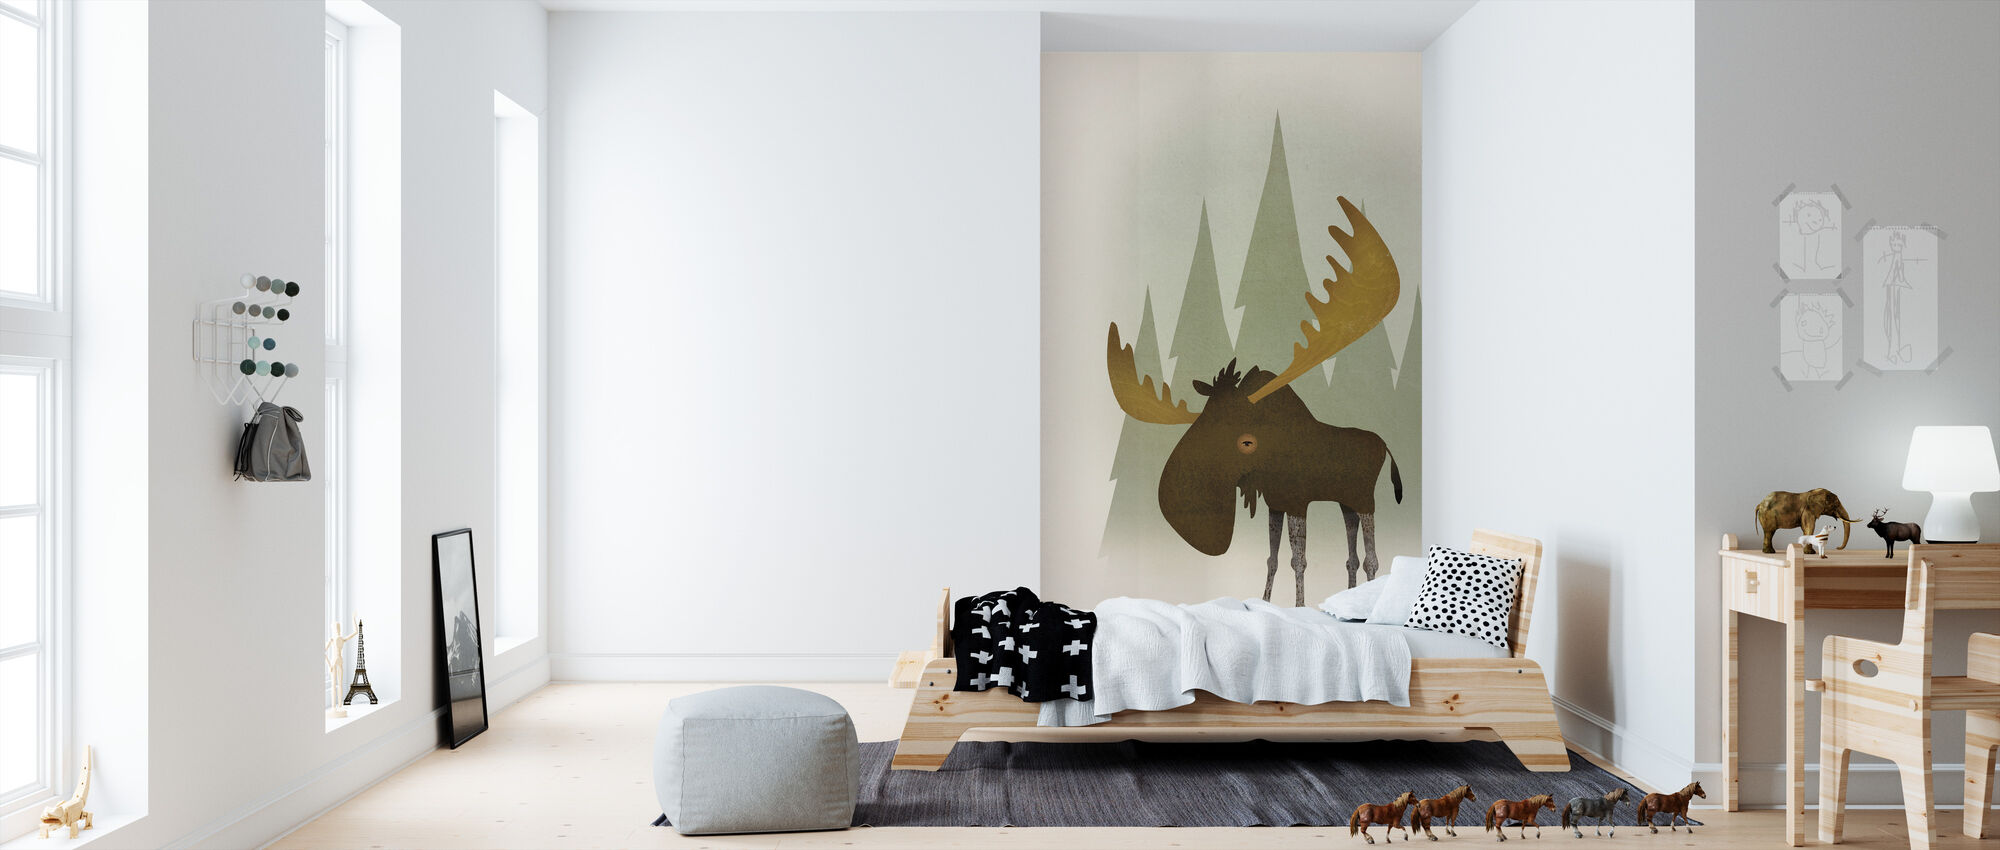 Forest Moose - Wallpaper - Kids Room